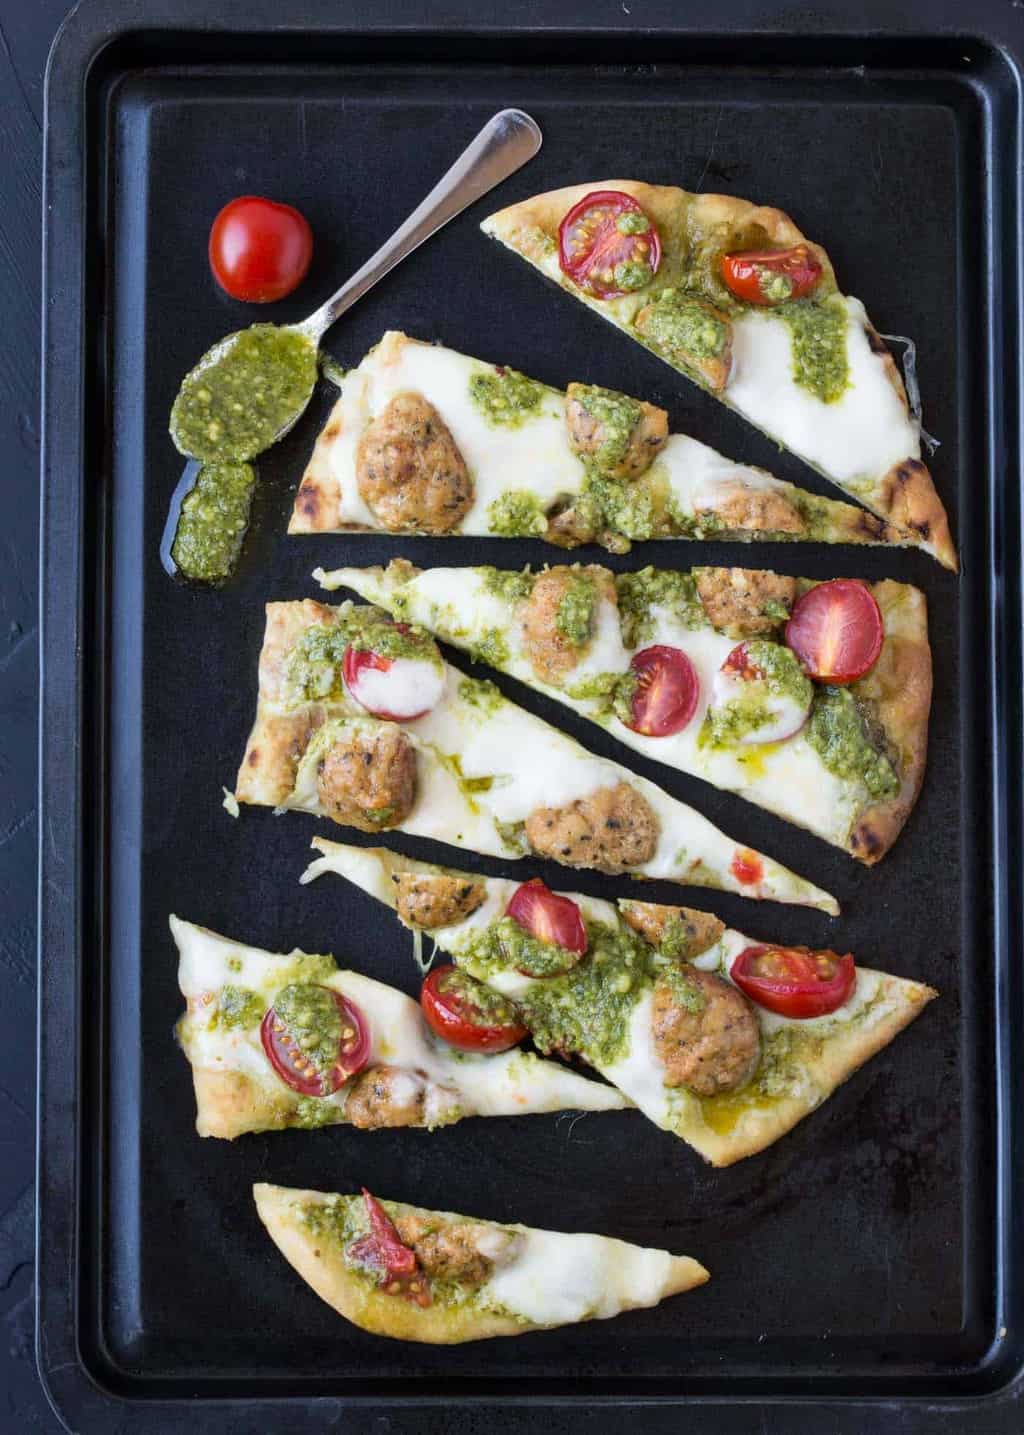 This Pesto Meatball Flatbread recipe delivers big flavor with fresh style and comes together in minutes - perfect for a last minute appetizer.